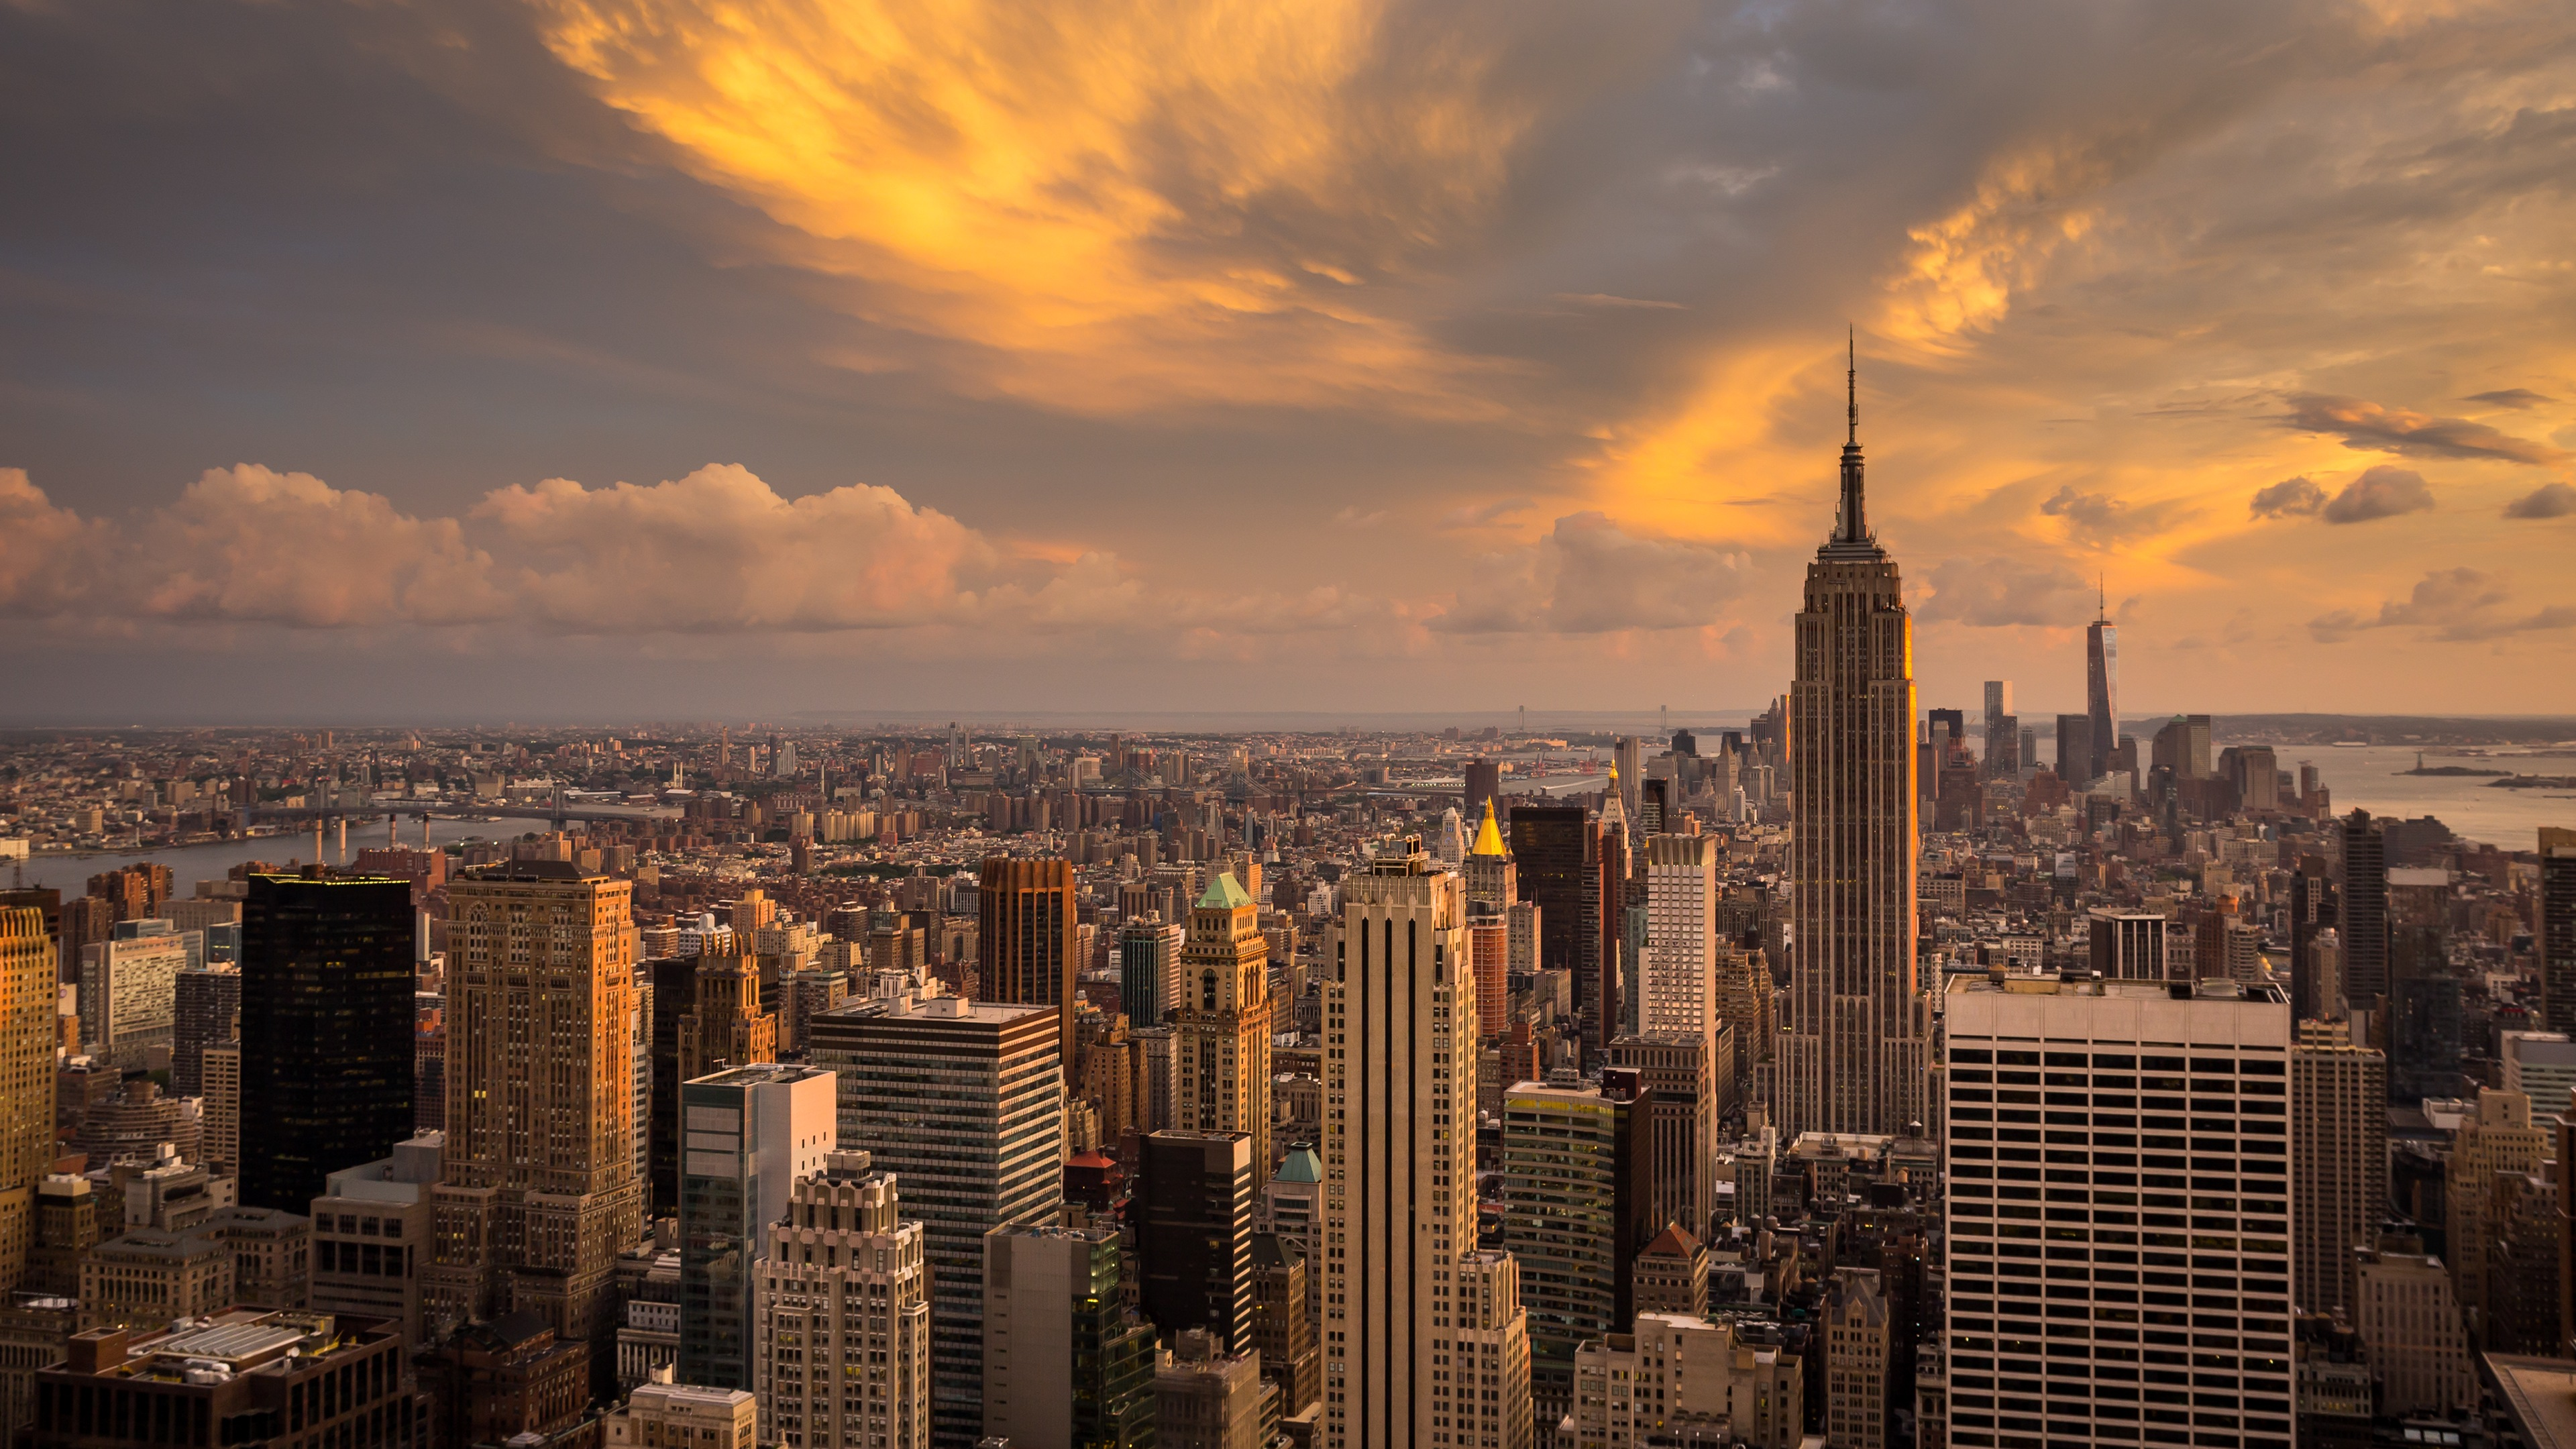 New York City Manhattan Sunset 4K Ultra HD Desktop 4K Wallpaper